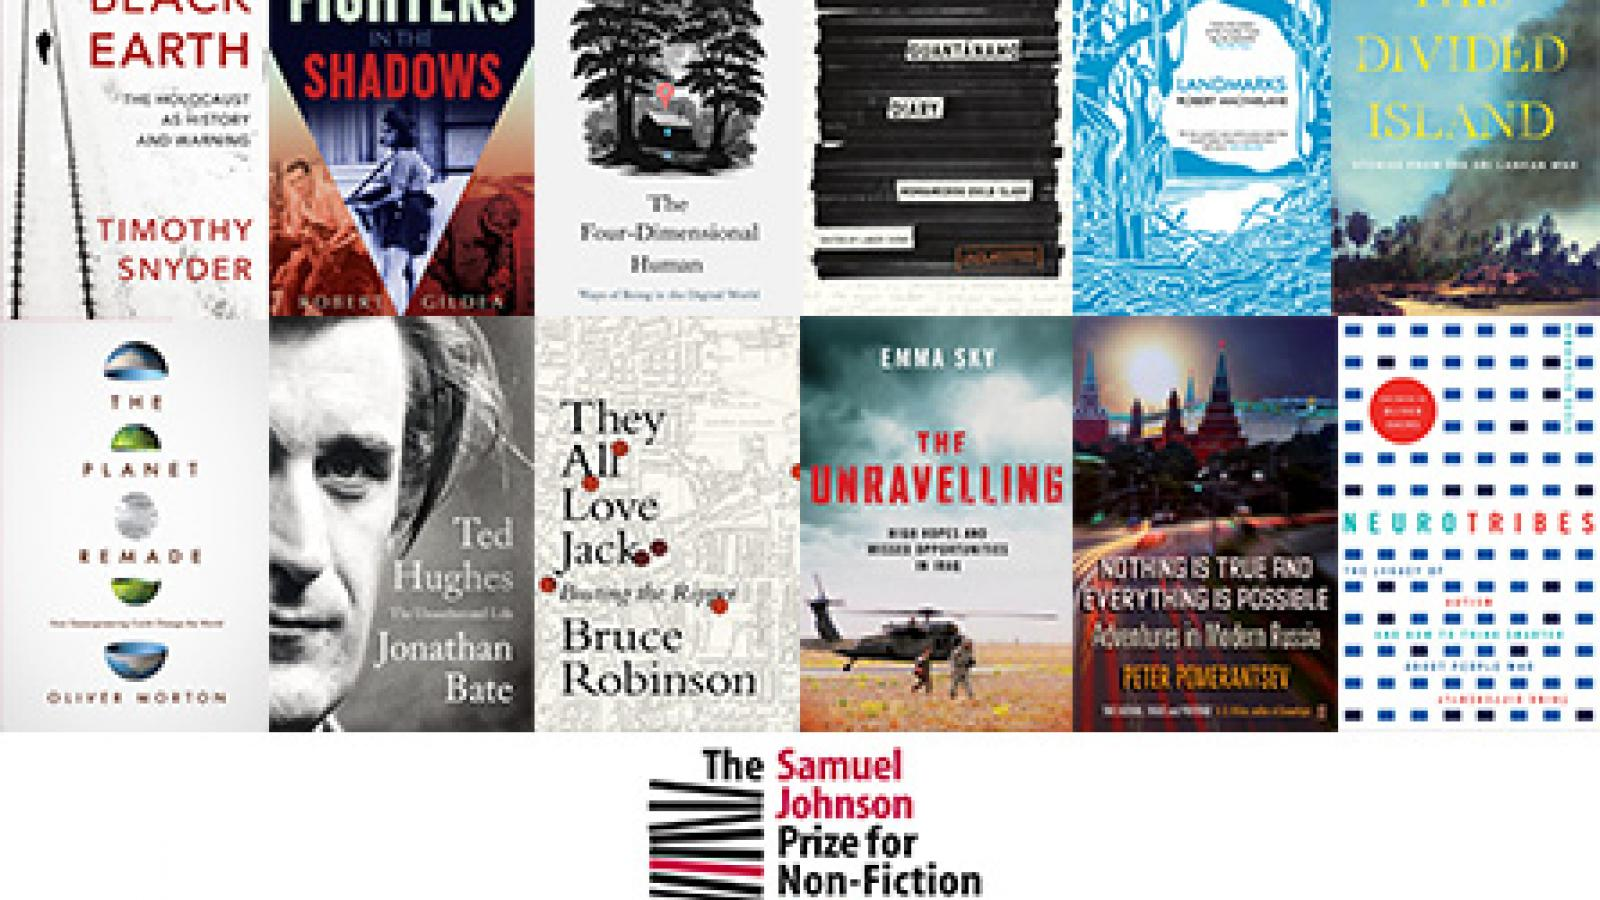 The Samuel Johnson Prize for Non-Fiction 2015 longlist